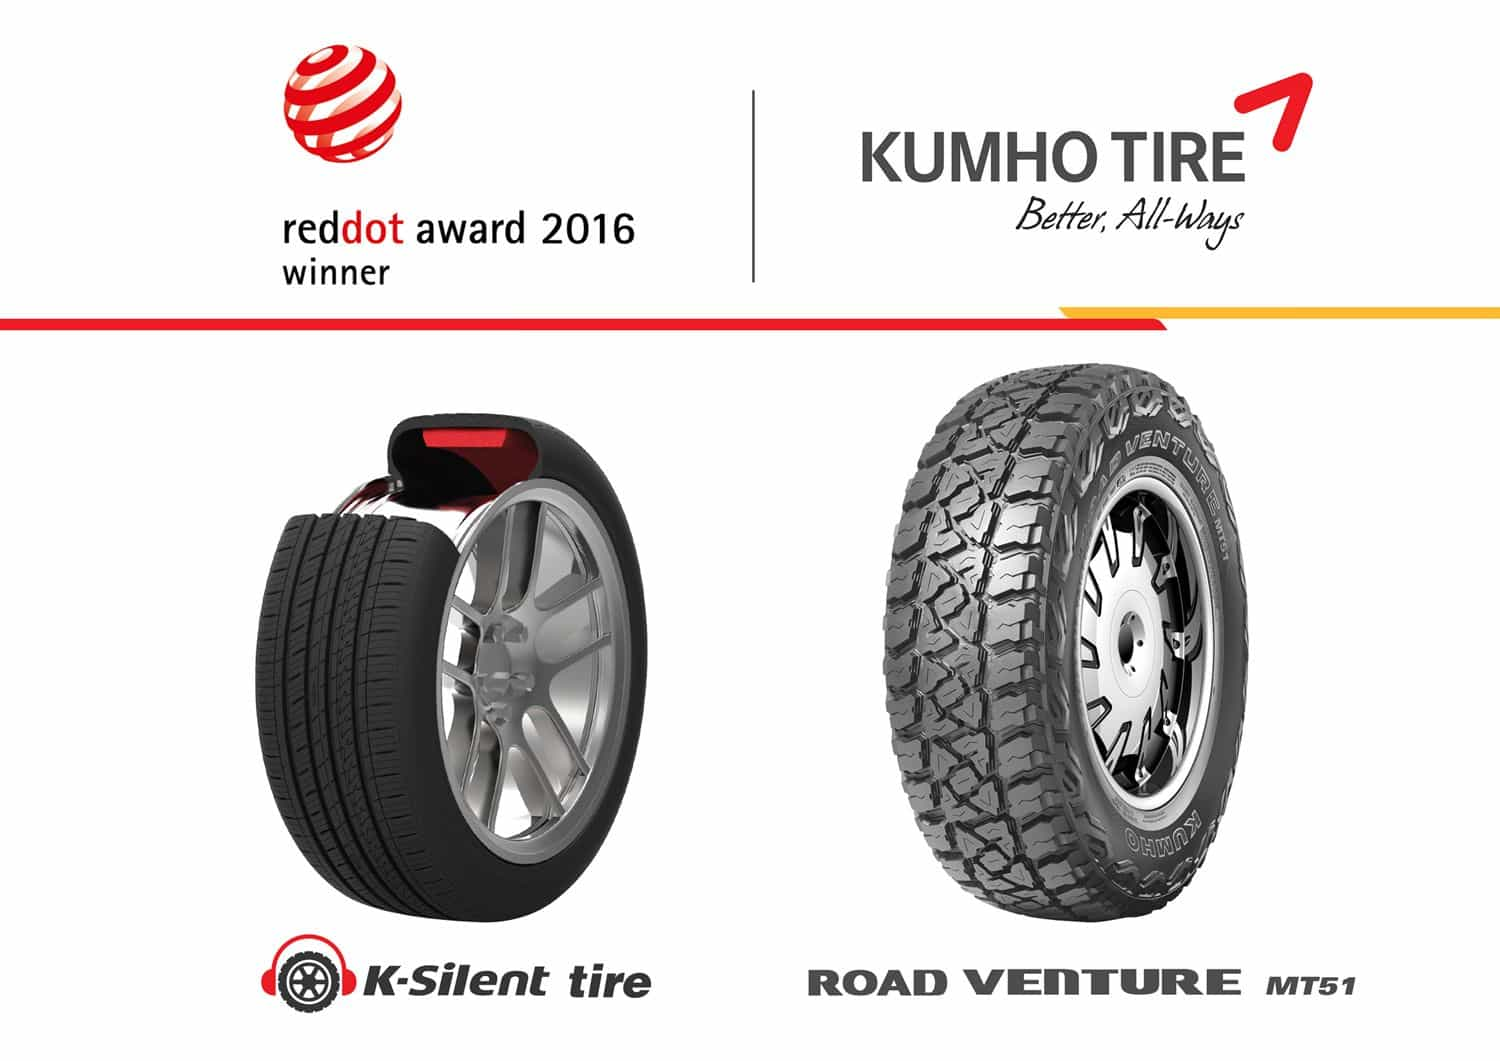 Kumho Tyre Wins Red Dot Award For Product Design 2